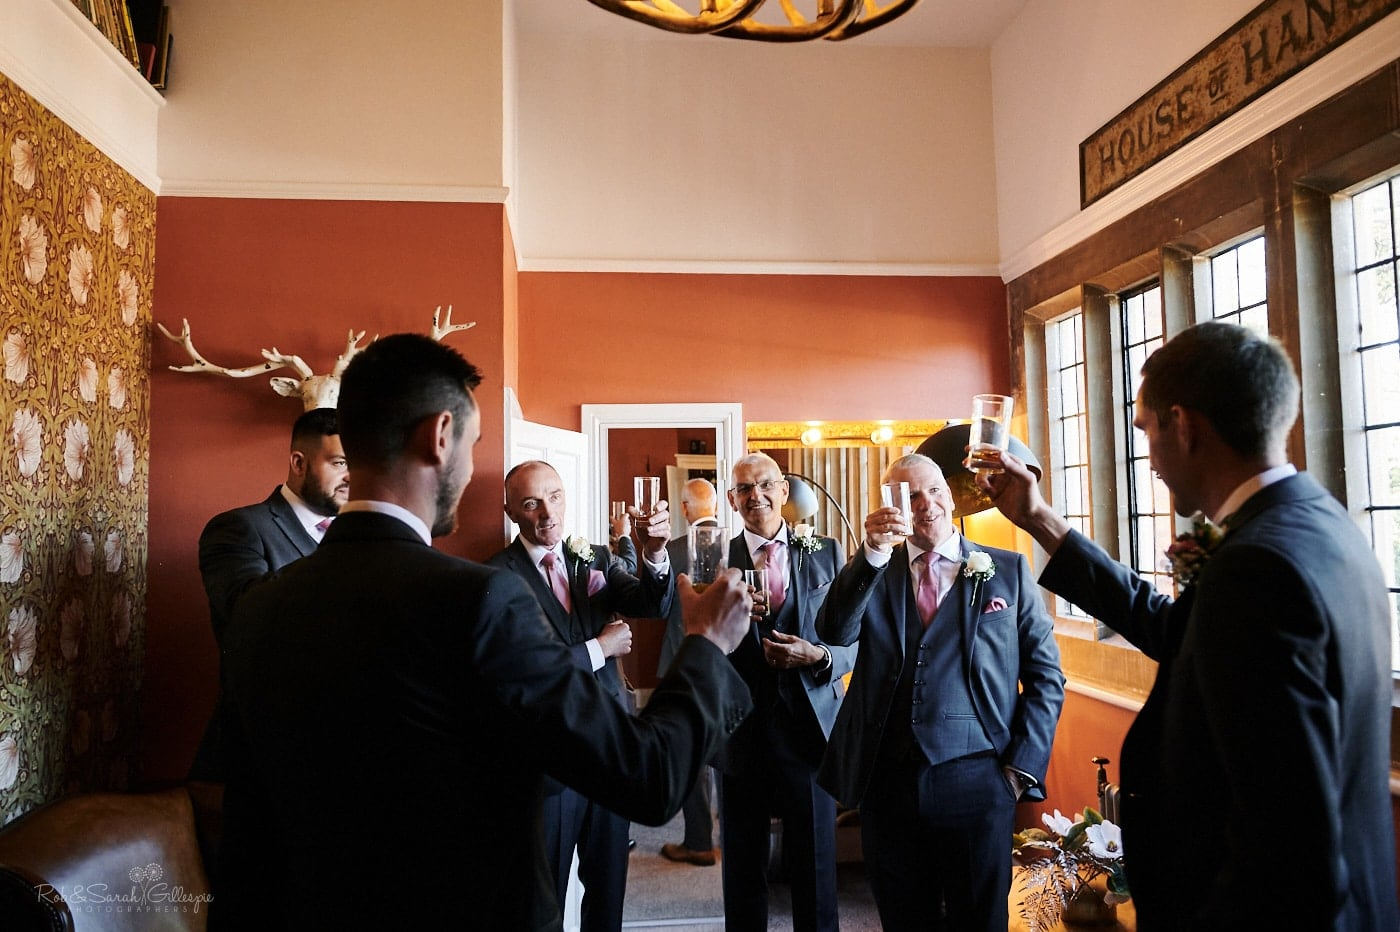 Groomsmen raise toast together in Pimpernel Suite at Pendrell Hall